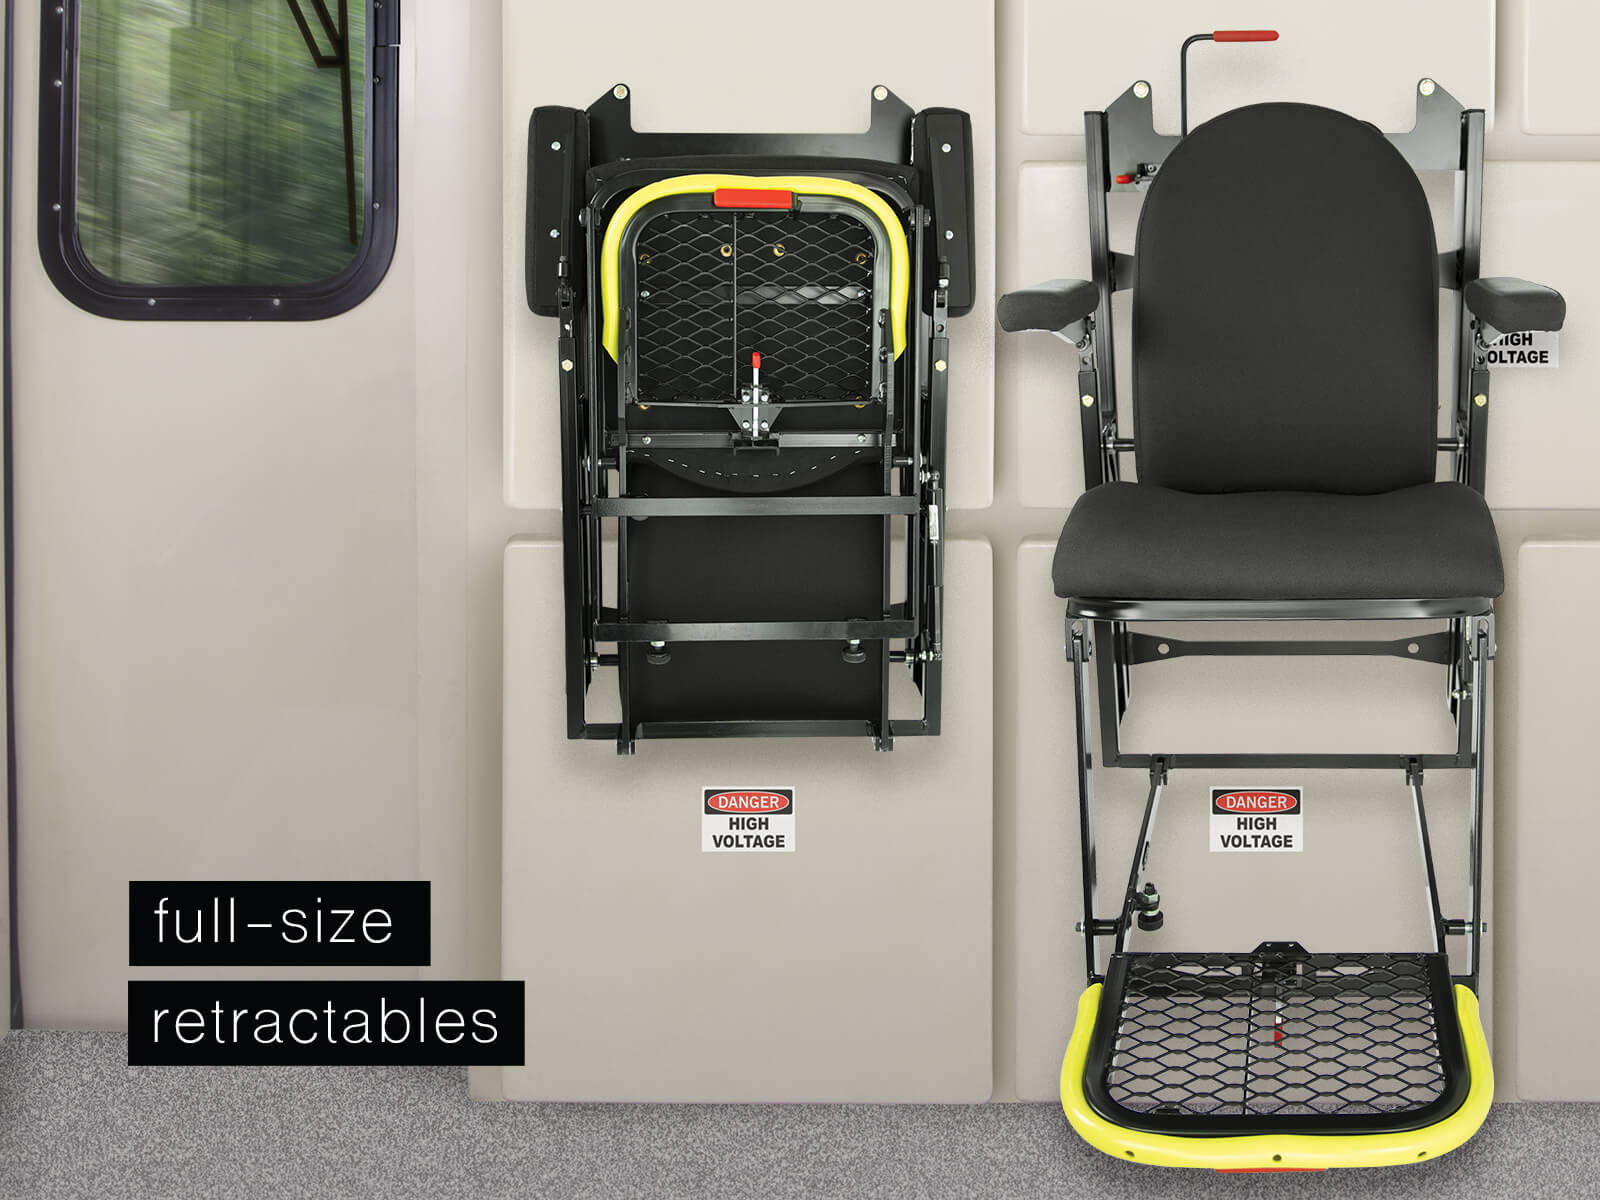 Baultar's Full Size Retractable Seat